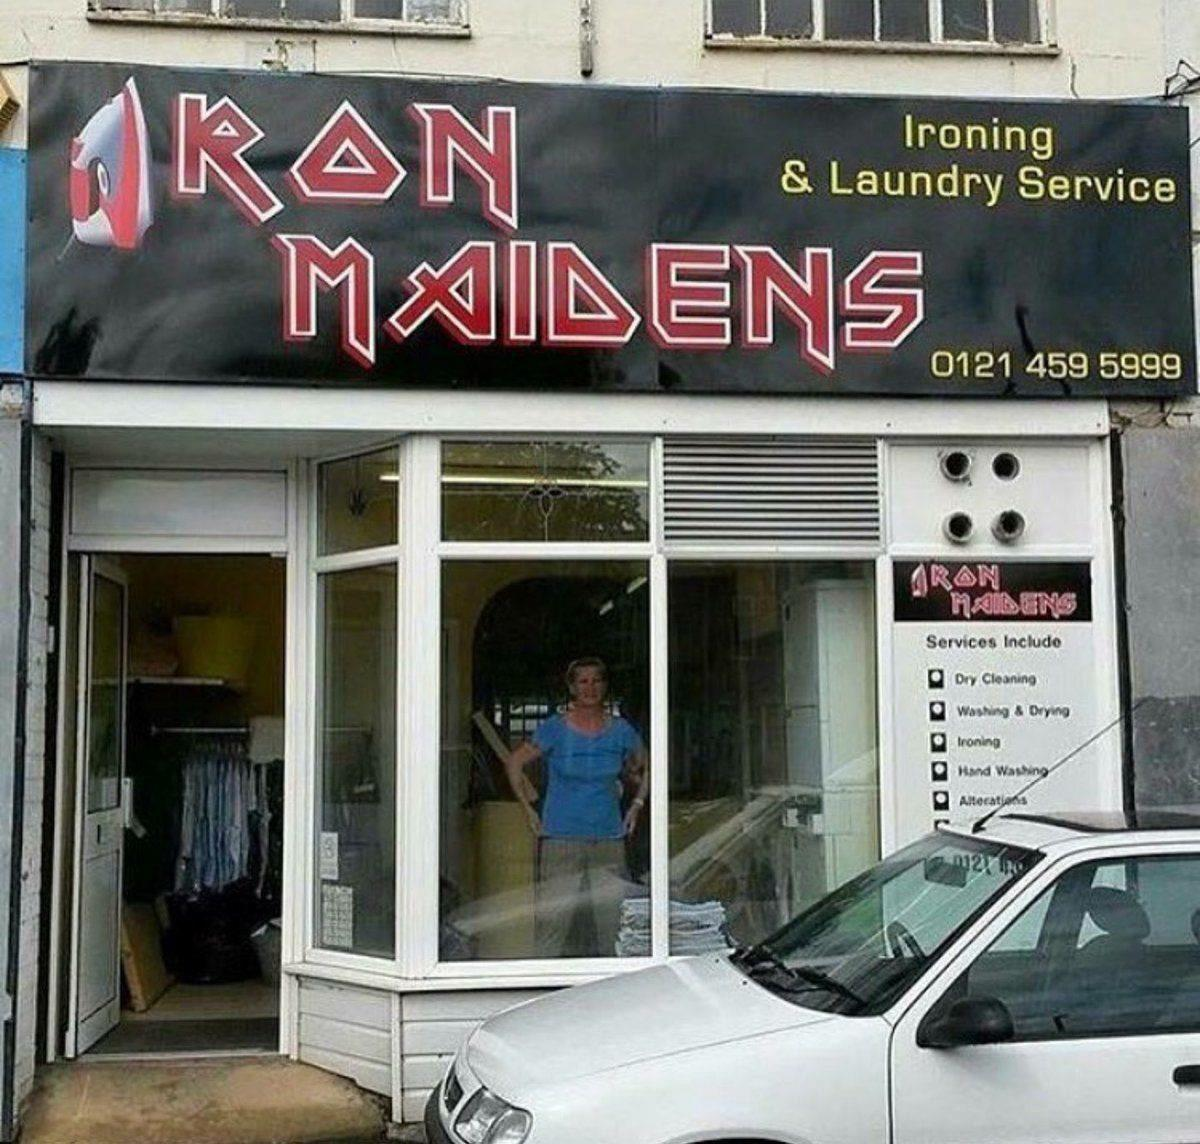 Iron Maiden side business